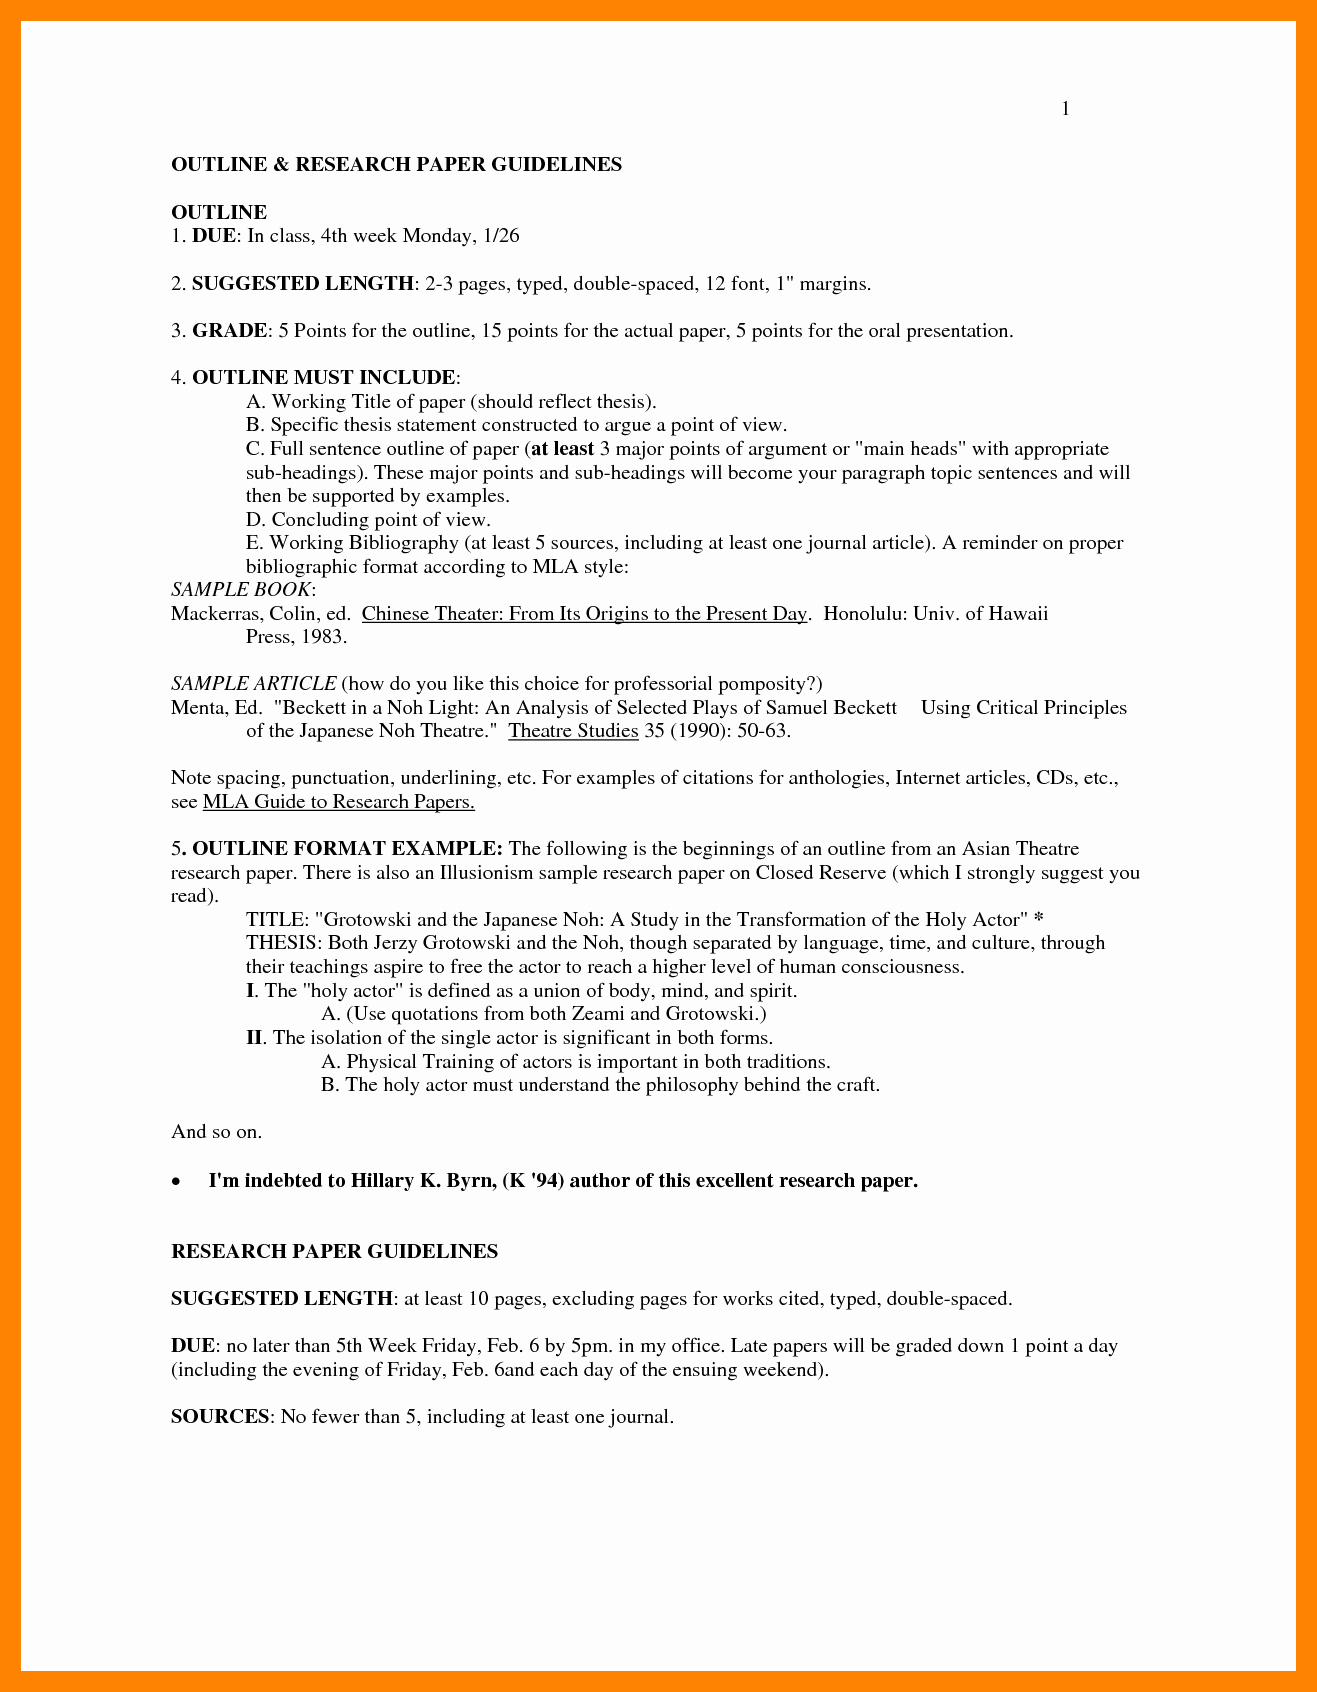 Mla formatted Research Paper Example Awesome Ideas Best S Proper Mla format Outline Mla